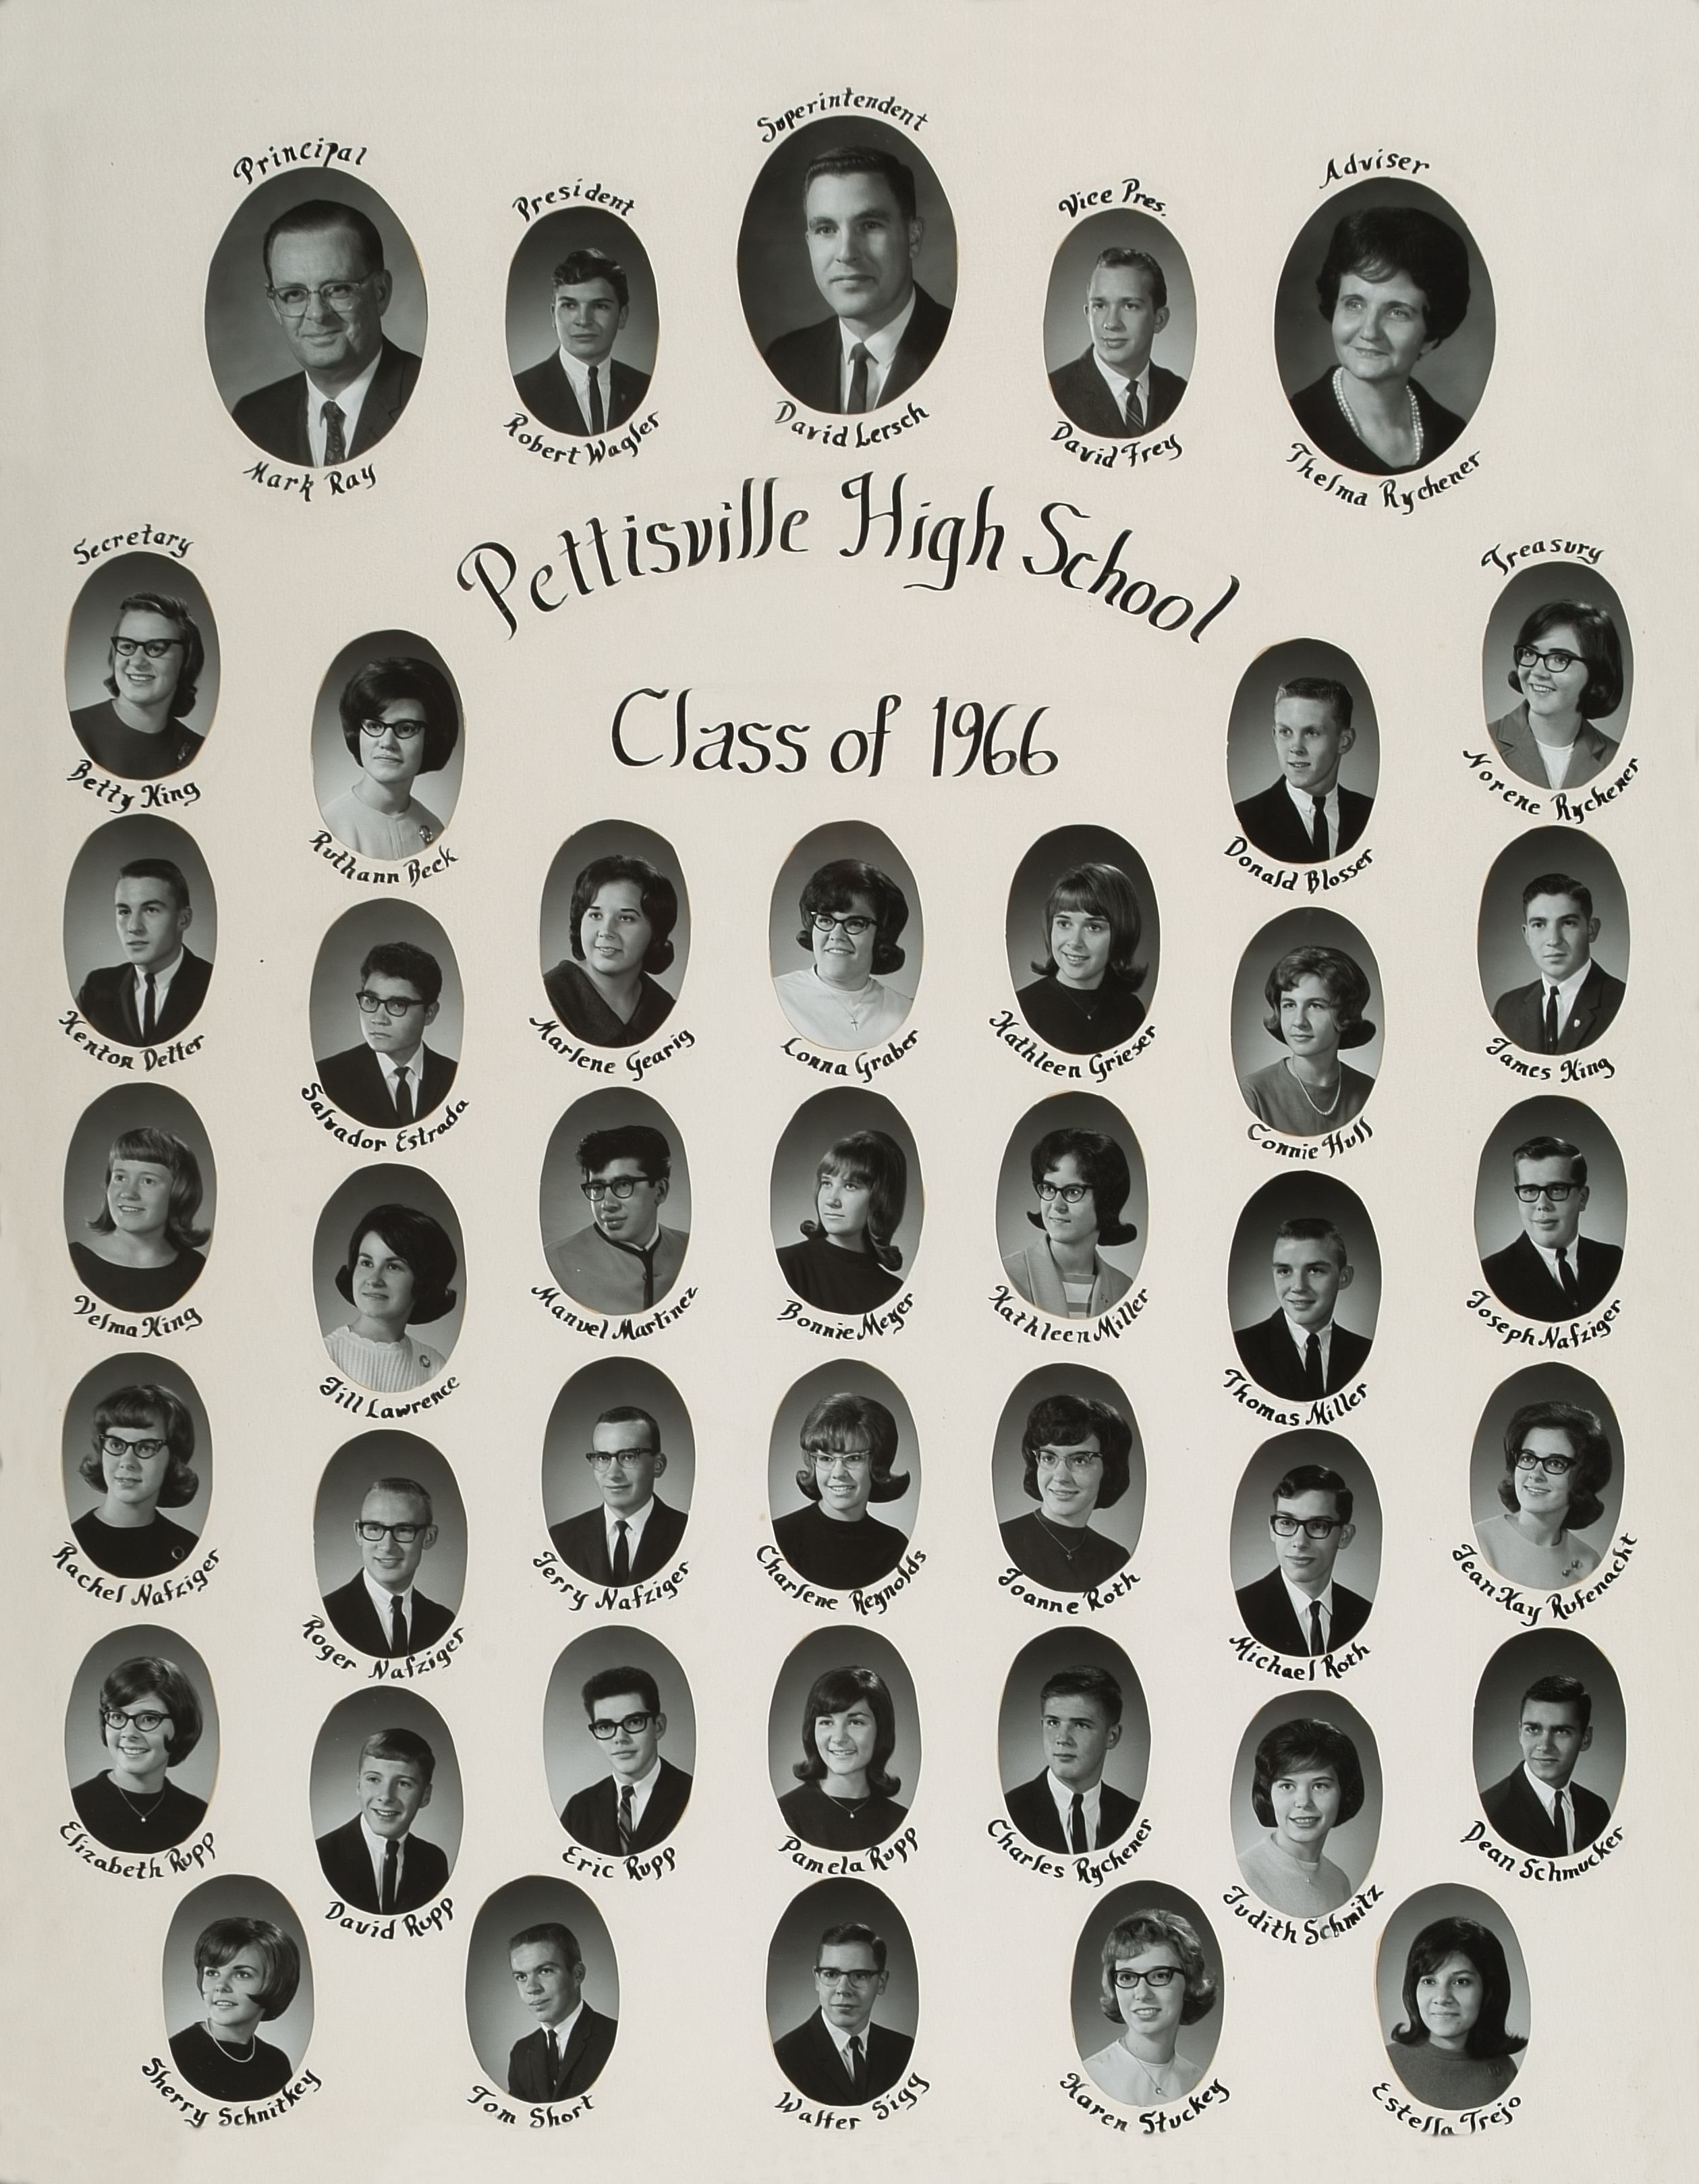 1611244870-1600709297-pettisville_high_school_class_composite_1966